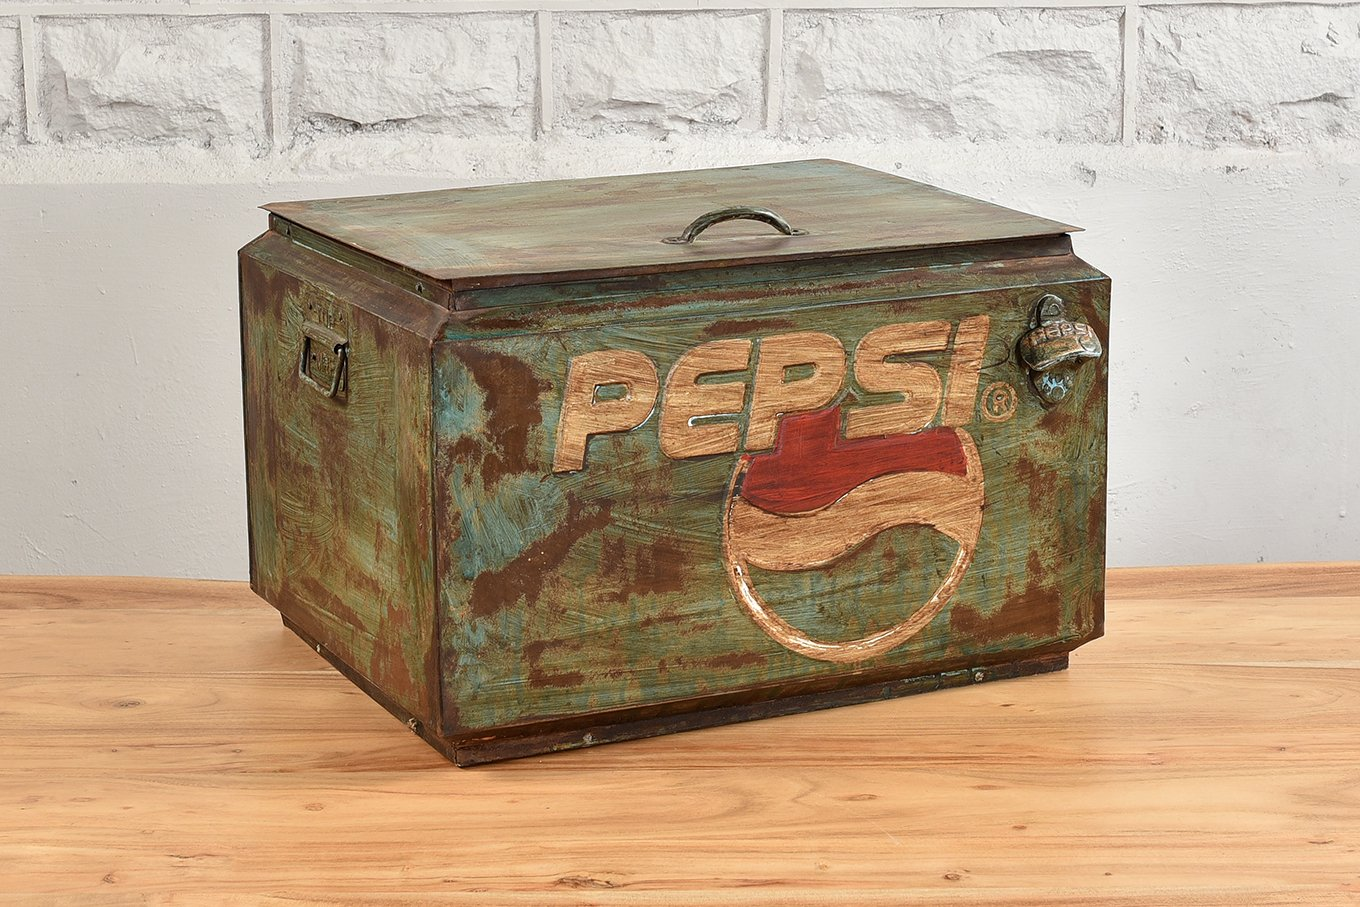 Green metal cooler box with bottle opener and carry handles